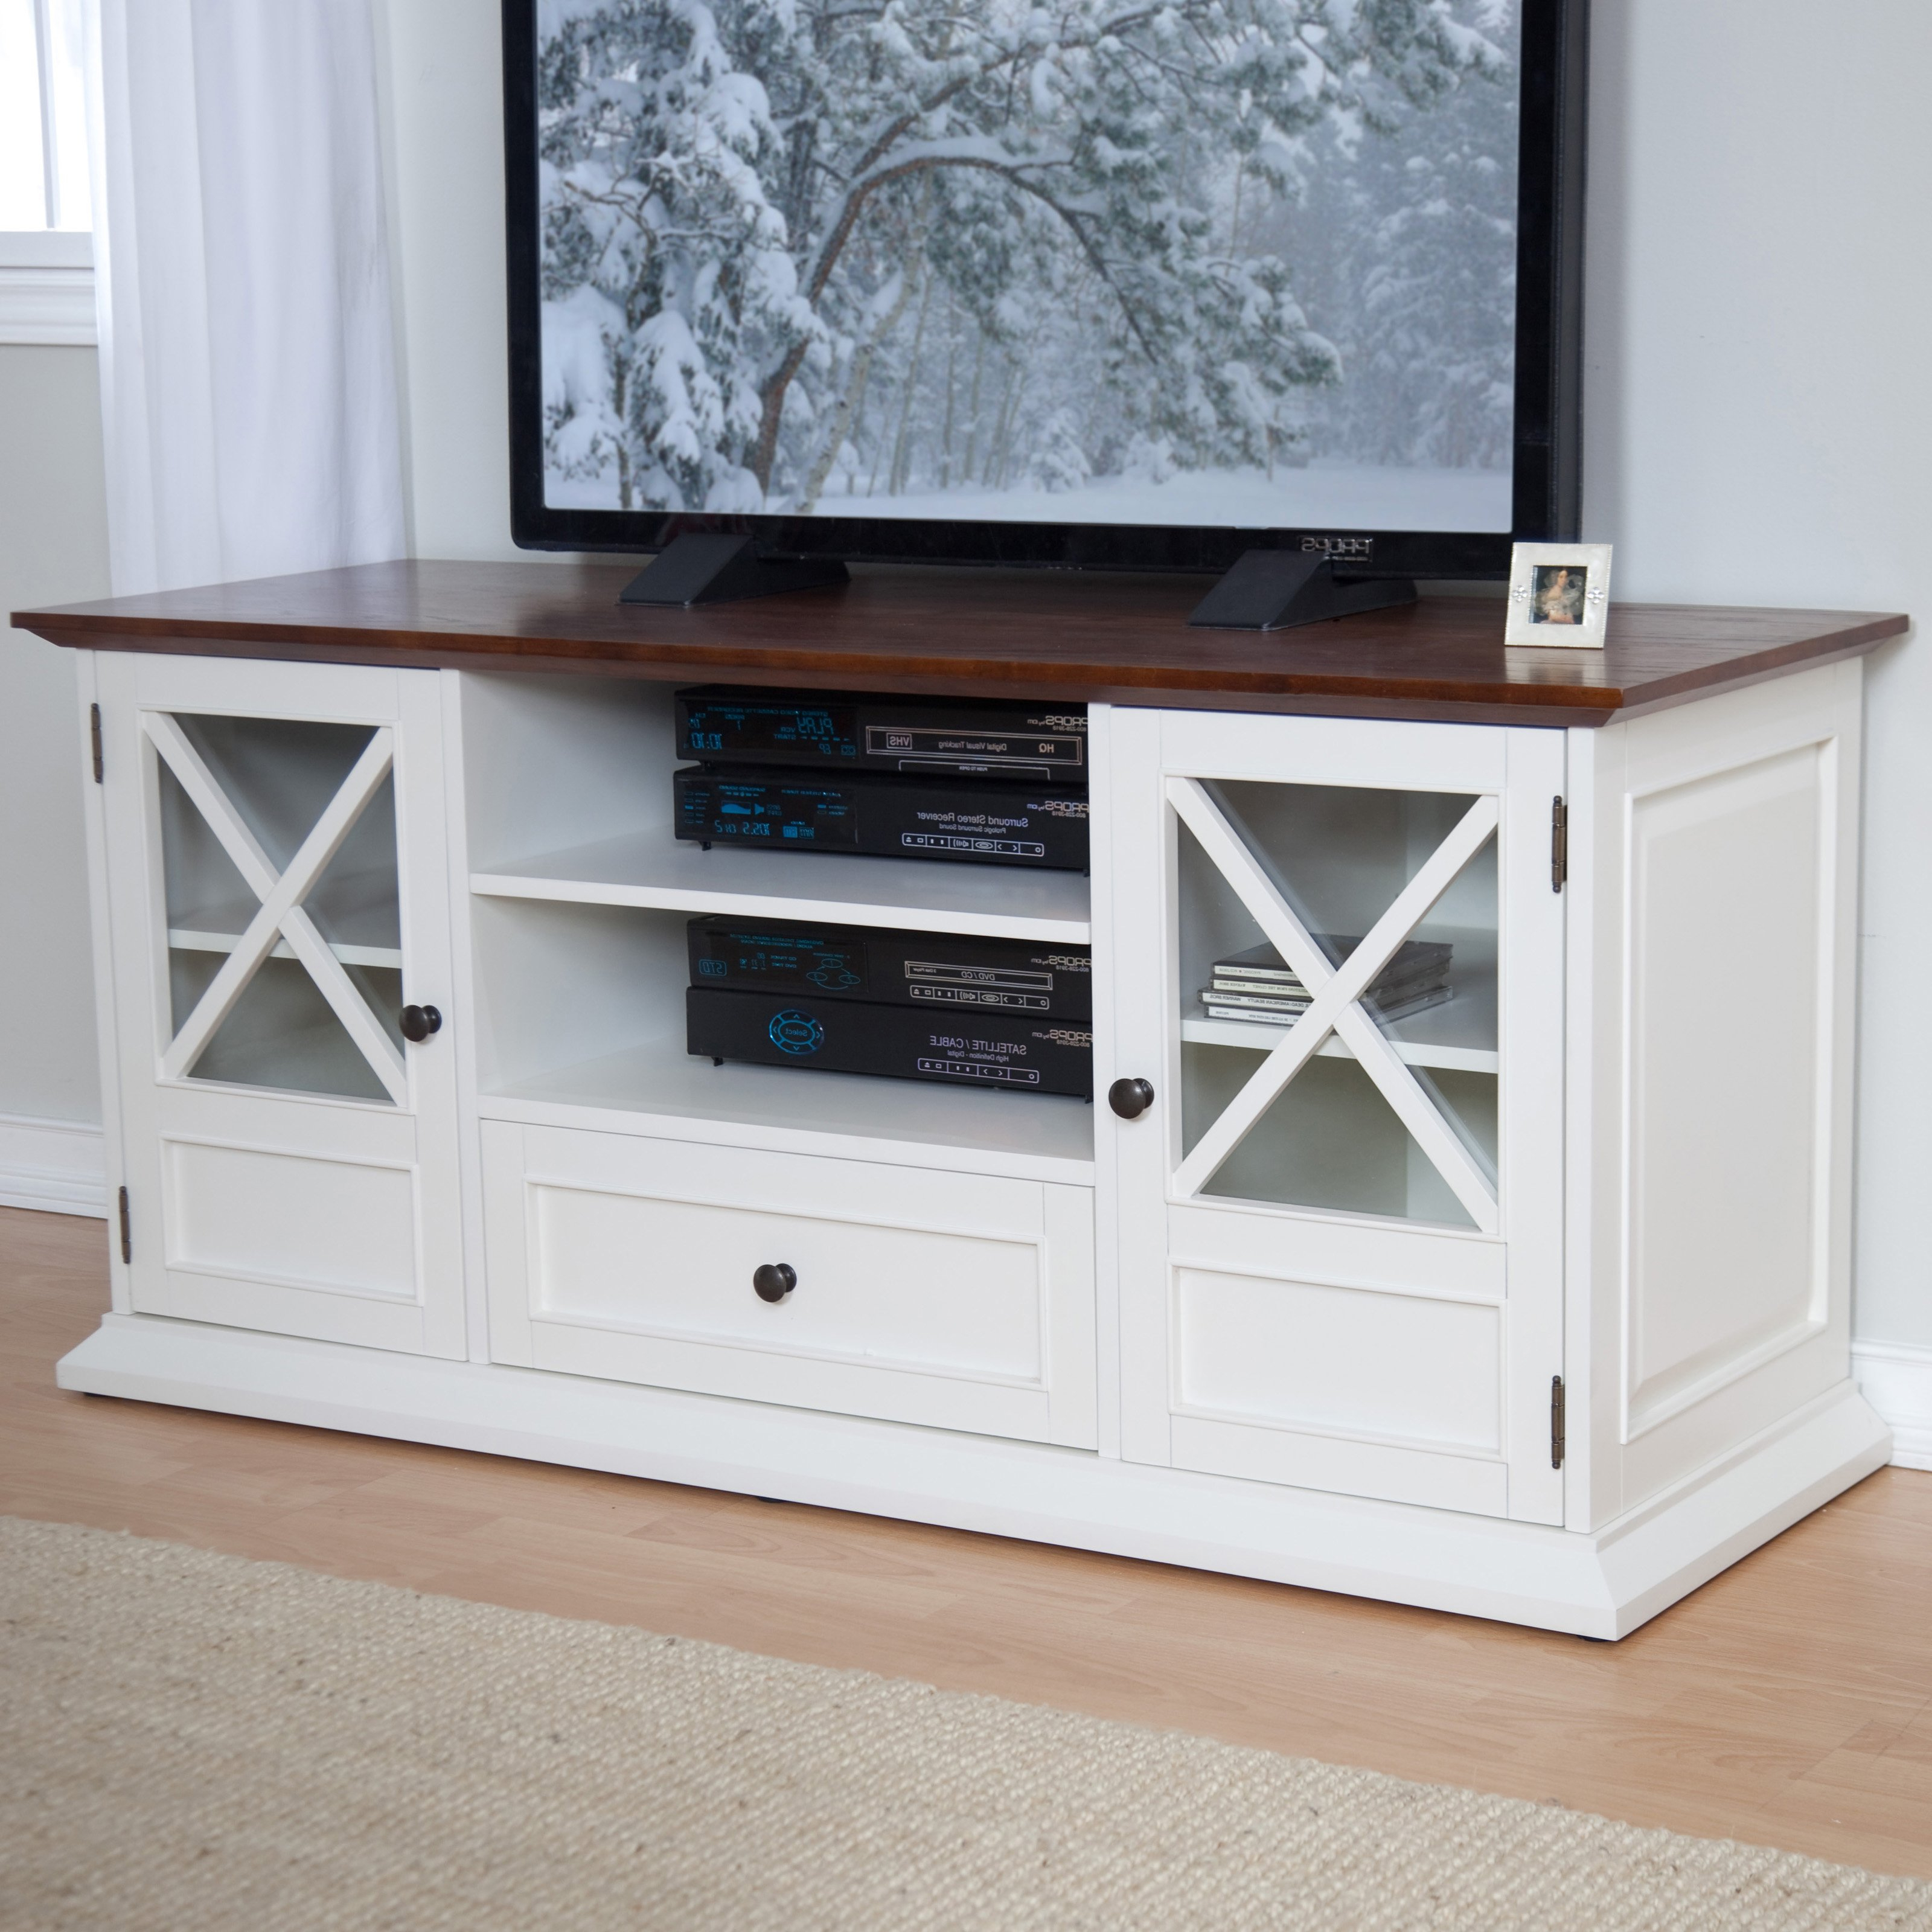 Widely Used Soulful Brasenhaus Large Tv Stand Superstore To Lovely Fireplace In Hardwood Tv Stands (View 19 of 20)